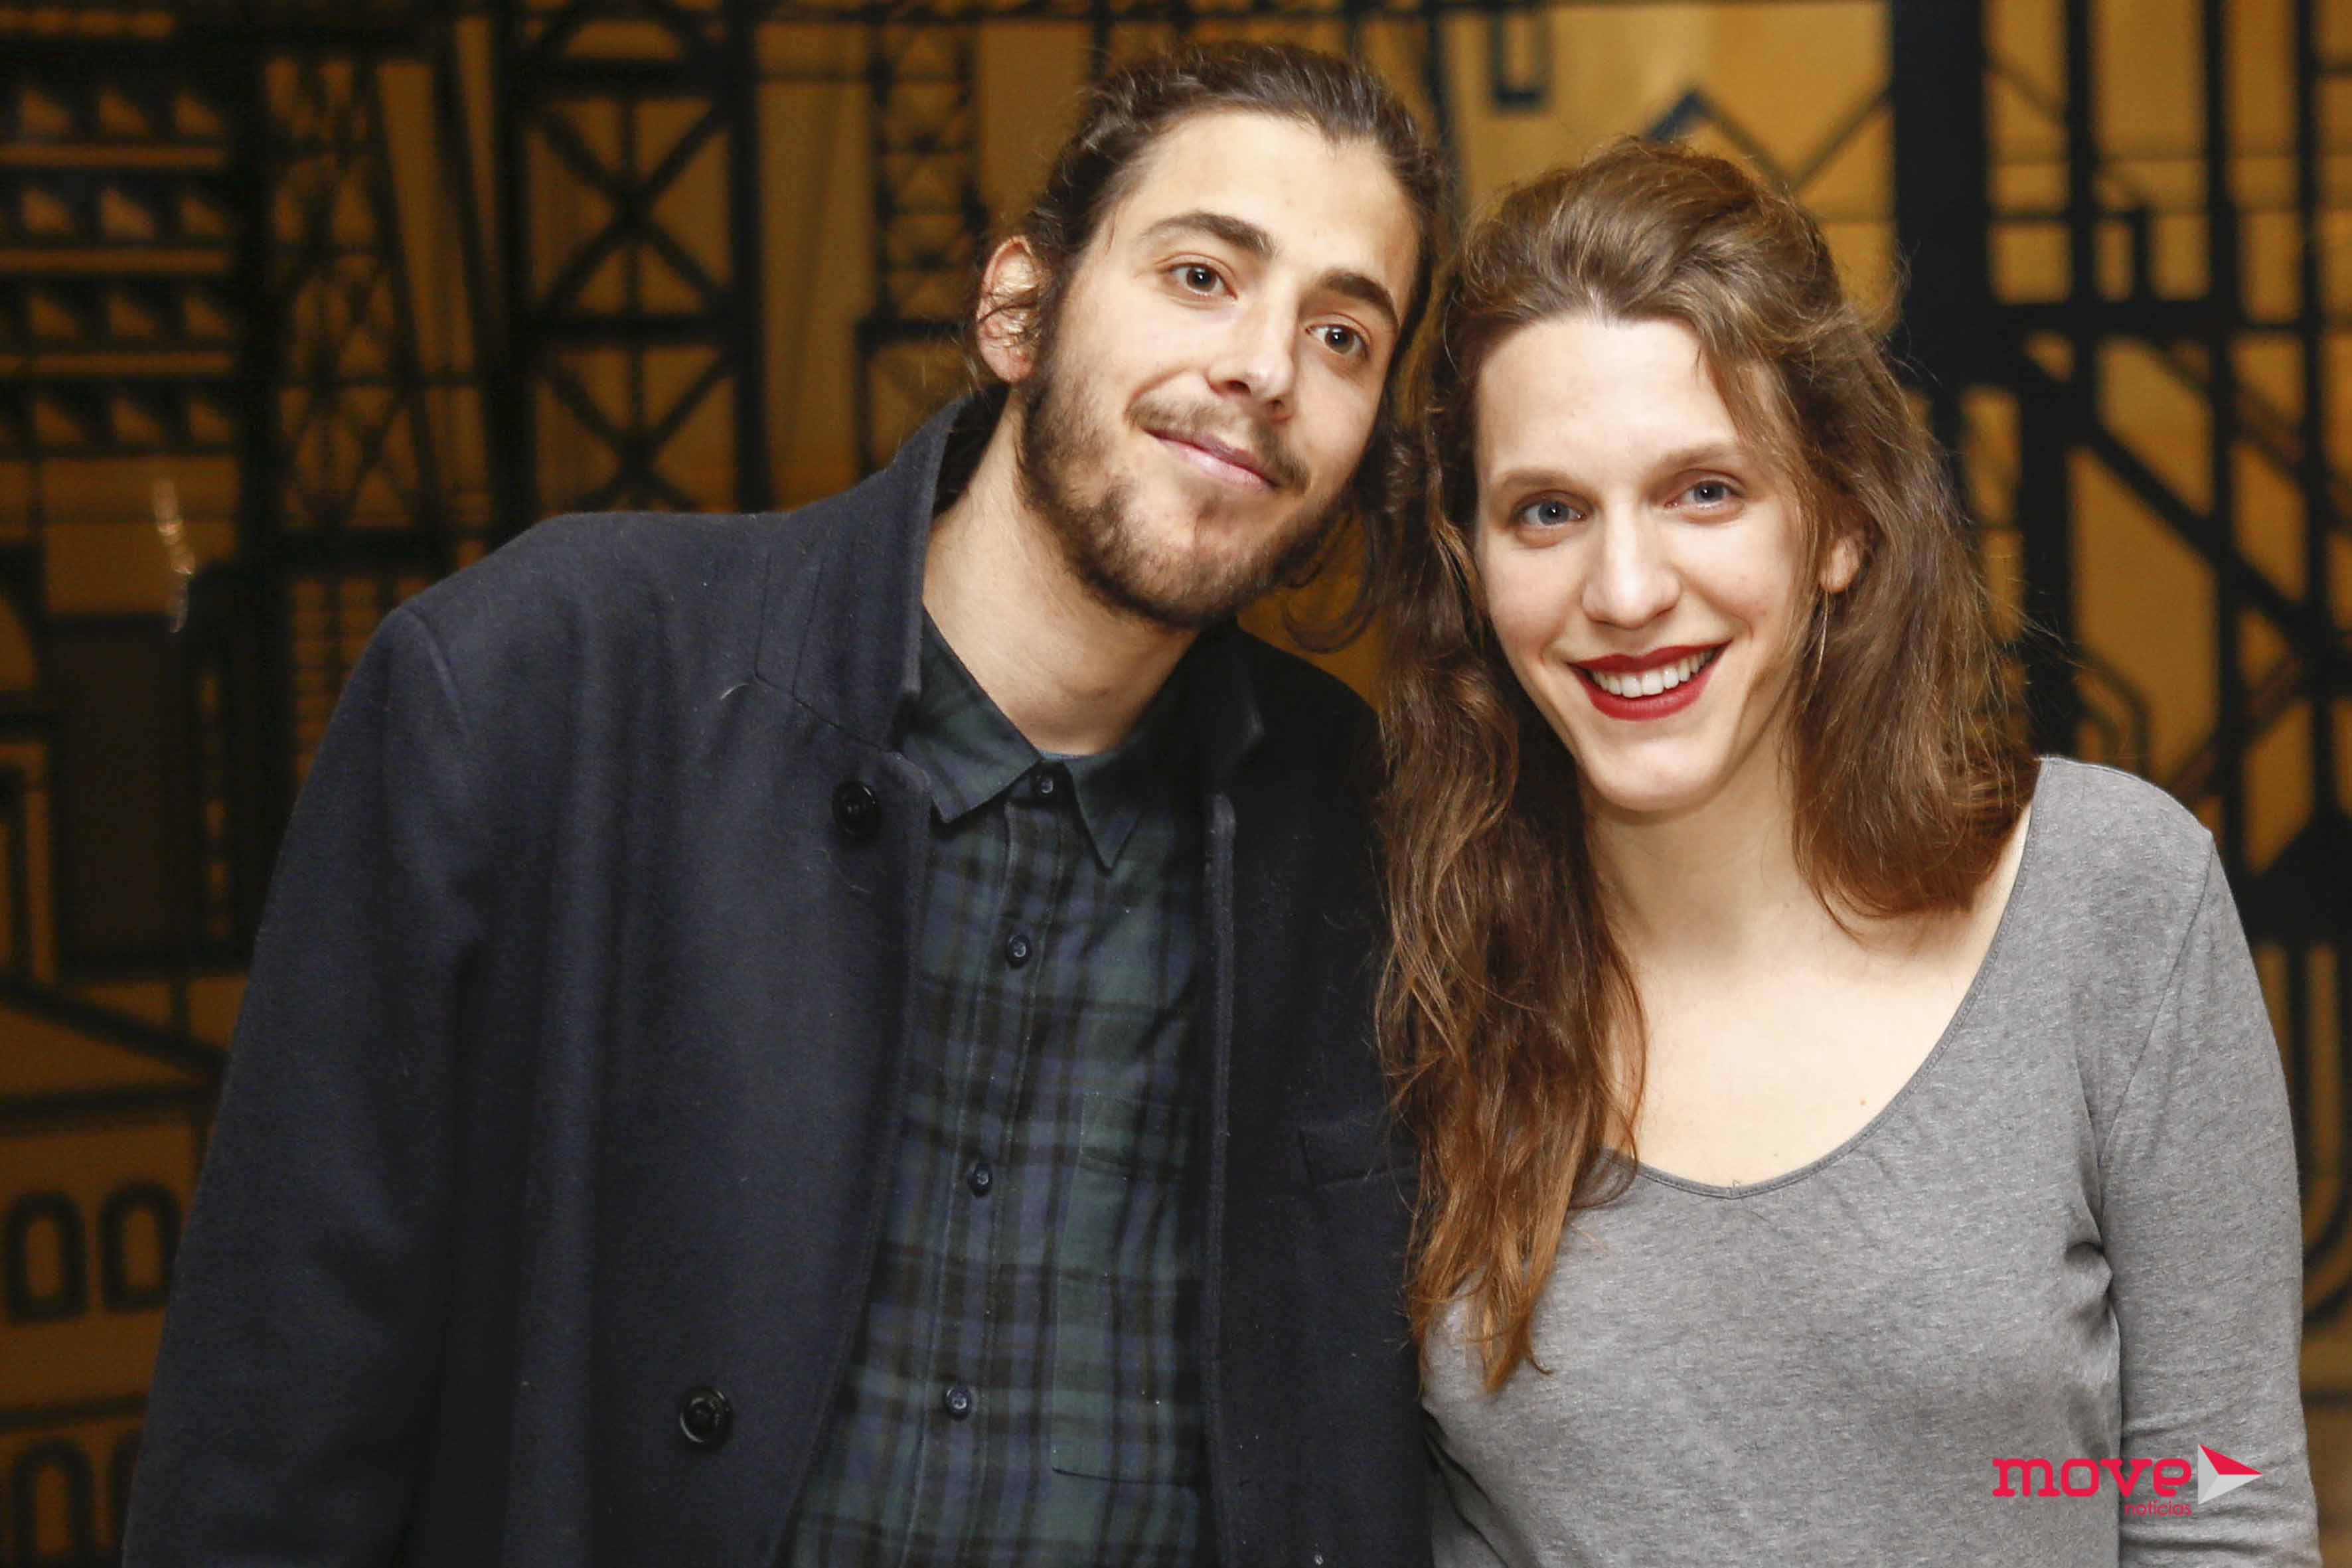 Image result for Salvador Sobral și Luísa Sobral photos